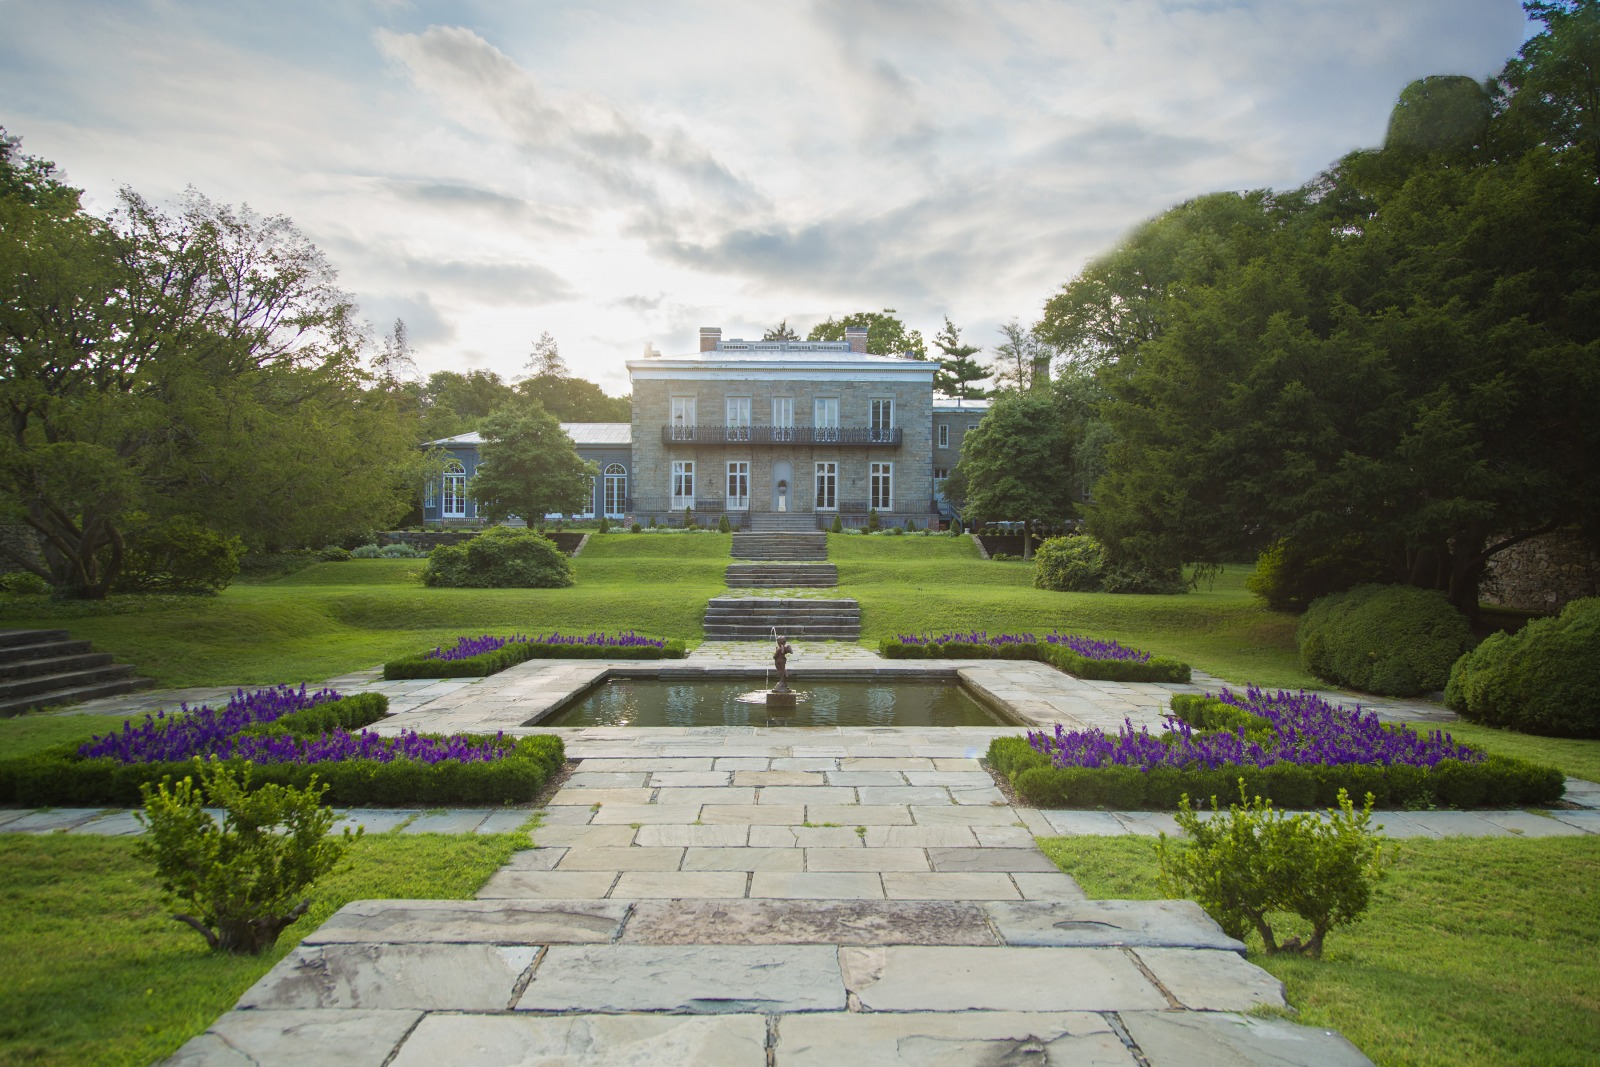 Bartow-Pell Mansion Museum and its formal garden